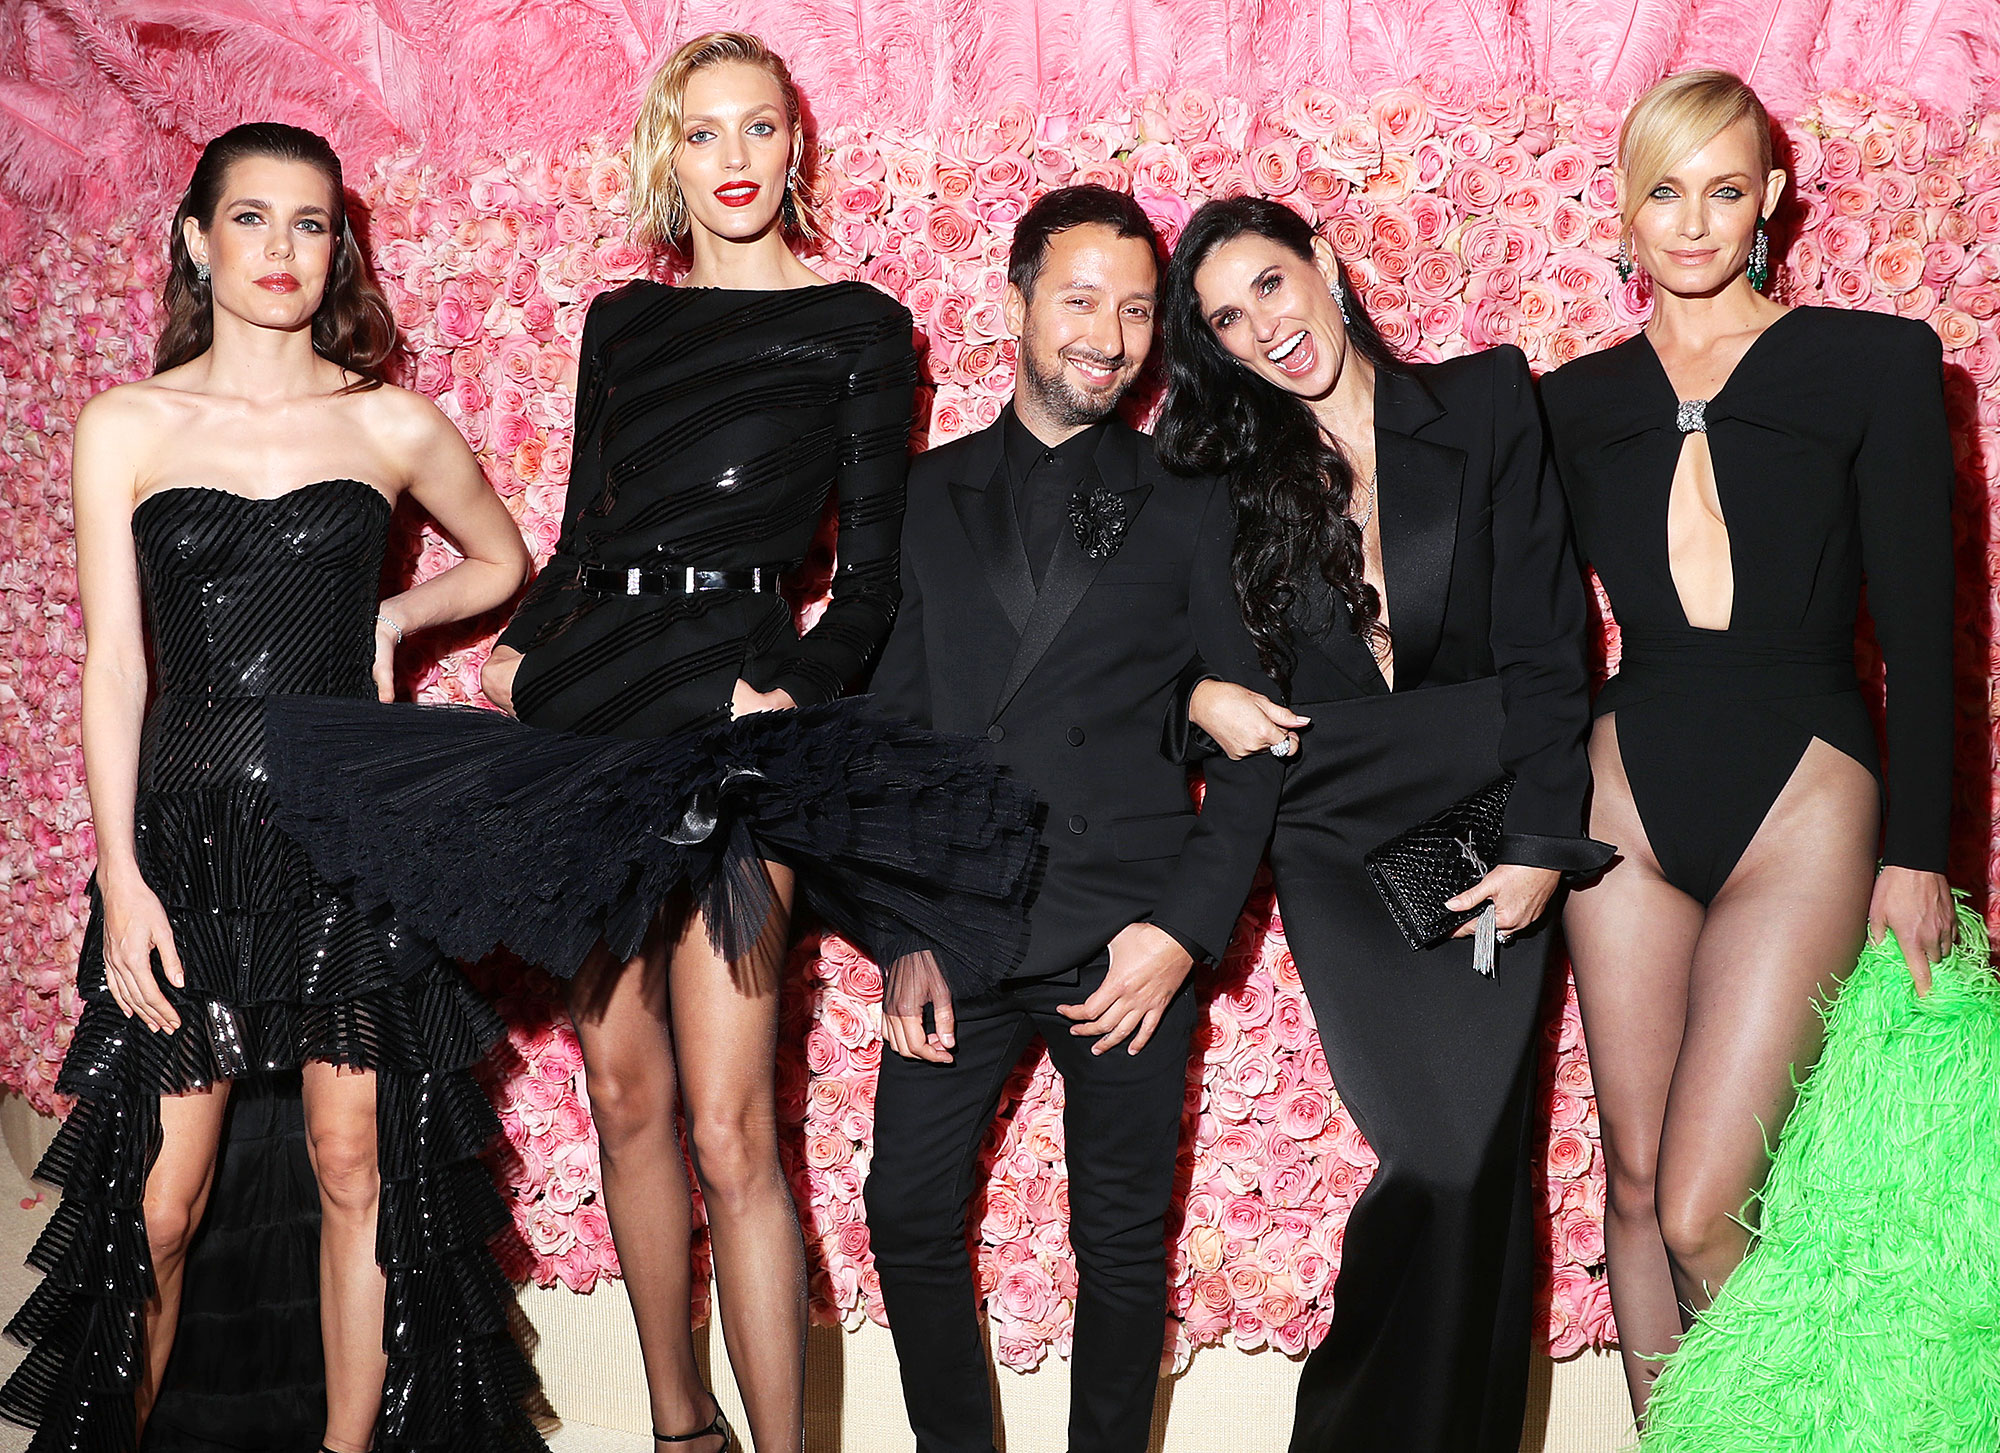 Met Gala 2019 What You Didnt See Charlotte Casiraghi Anja Rubik Anthony Vaccarello Demi Moore Amber Valletta - Charlotte Casiraghi, Anja Rubik, Demi Moore and Amber Valletta posed with Belgian fashion designer Anthony Vaccarello.